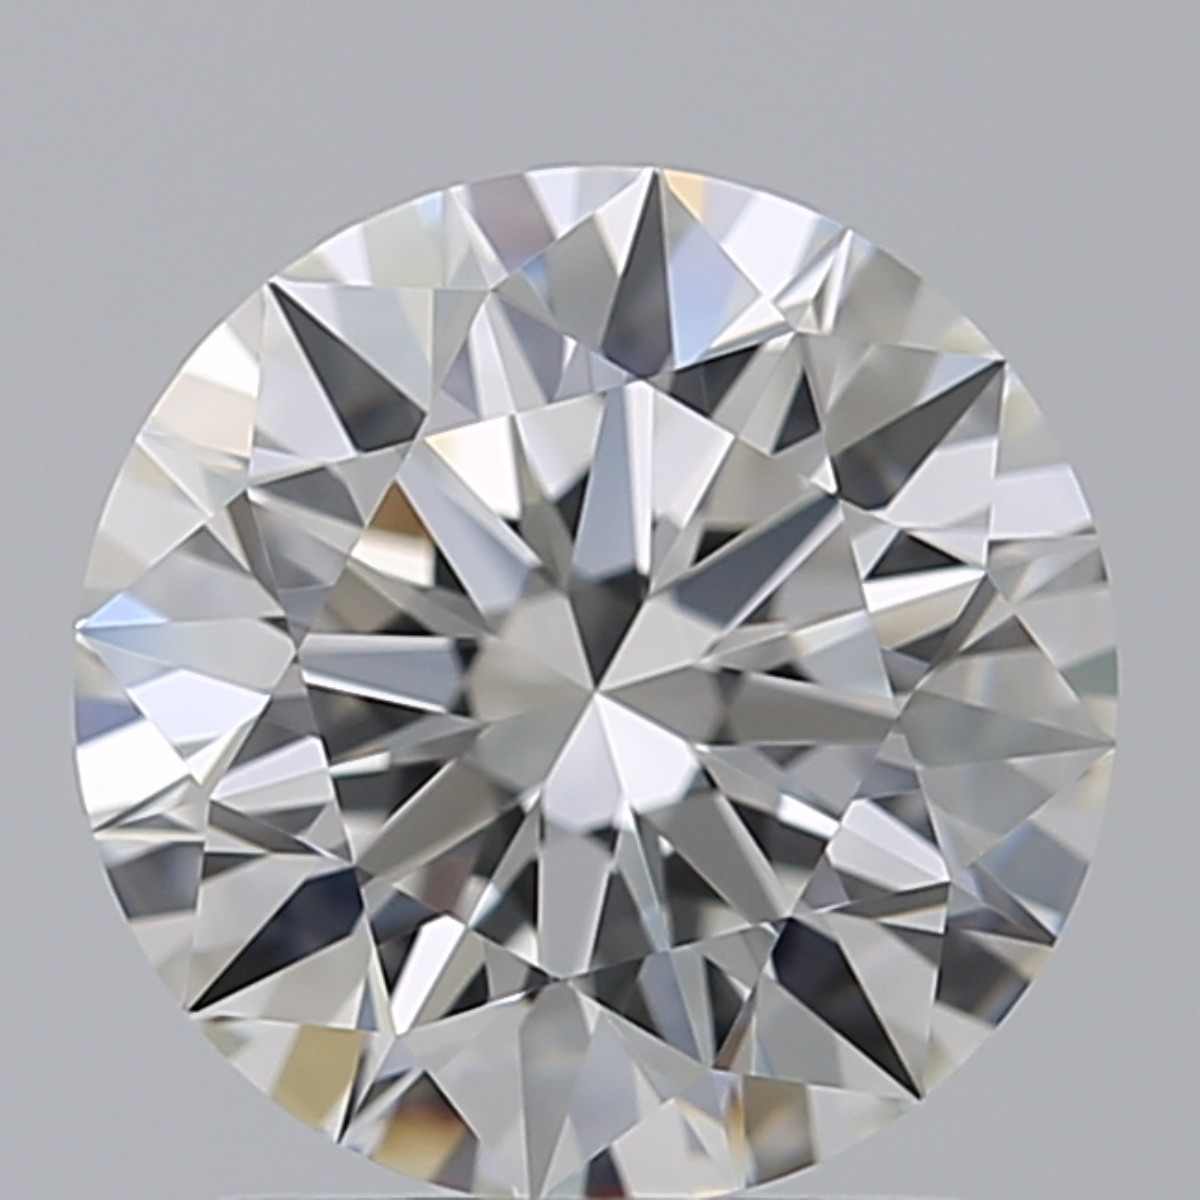 1.61 Carat Round Brilliant Diamond (G/VVS1)